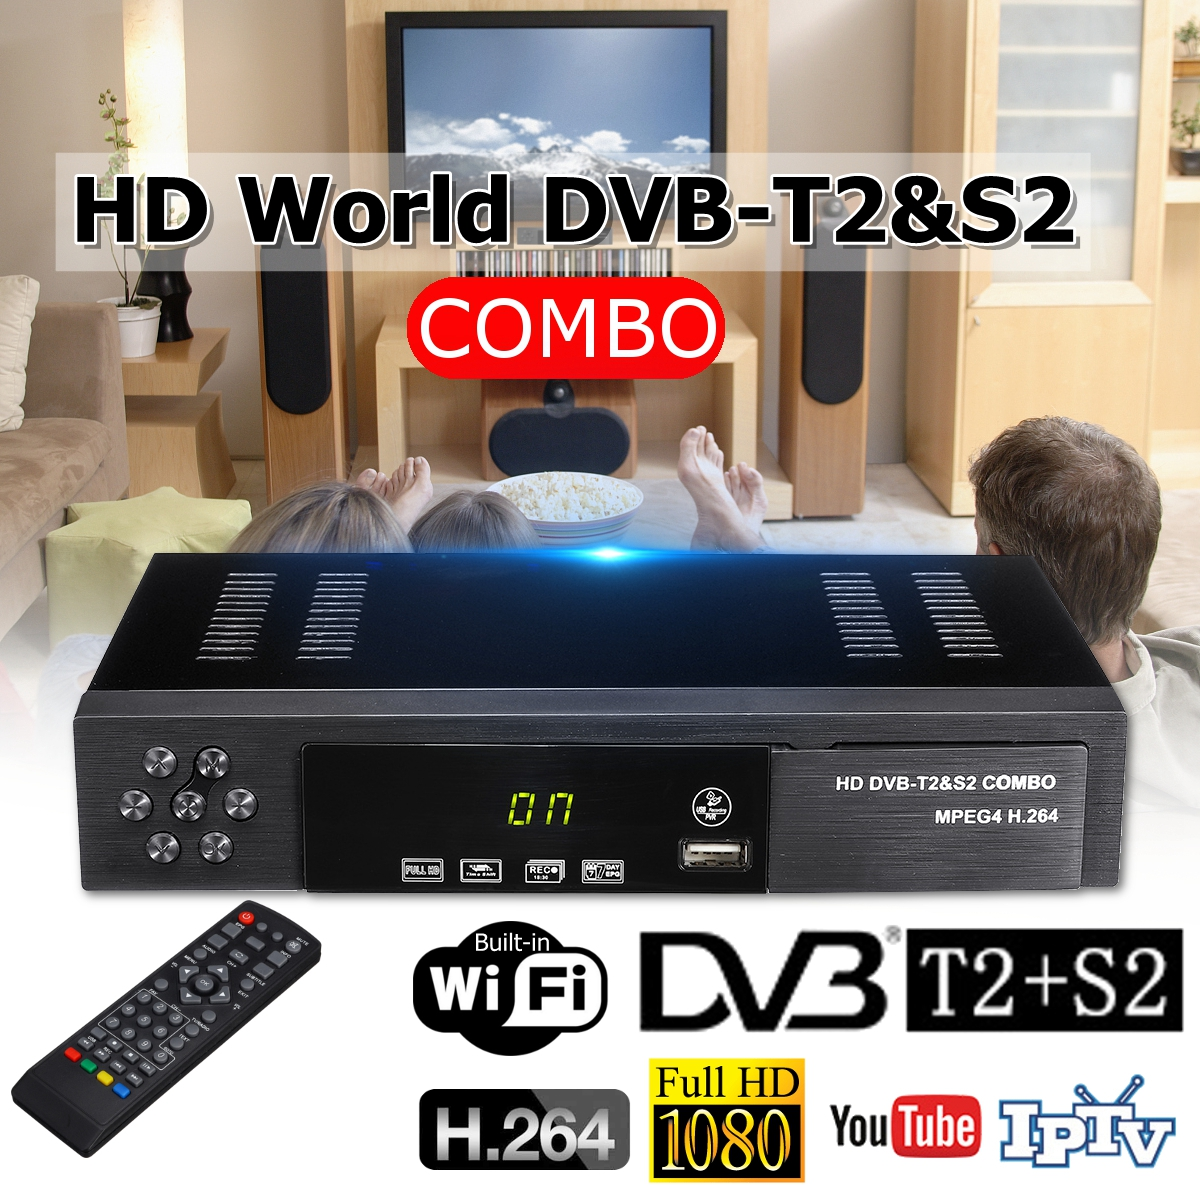 USB 2.0 DVB S2 T2 TV Tuner DVB-S2 DVB-T2 Combo Receiver Set Top Box Full-HD Digital Smart TV Box MPEG4 Support Wifi Antenna